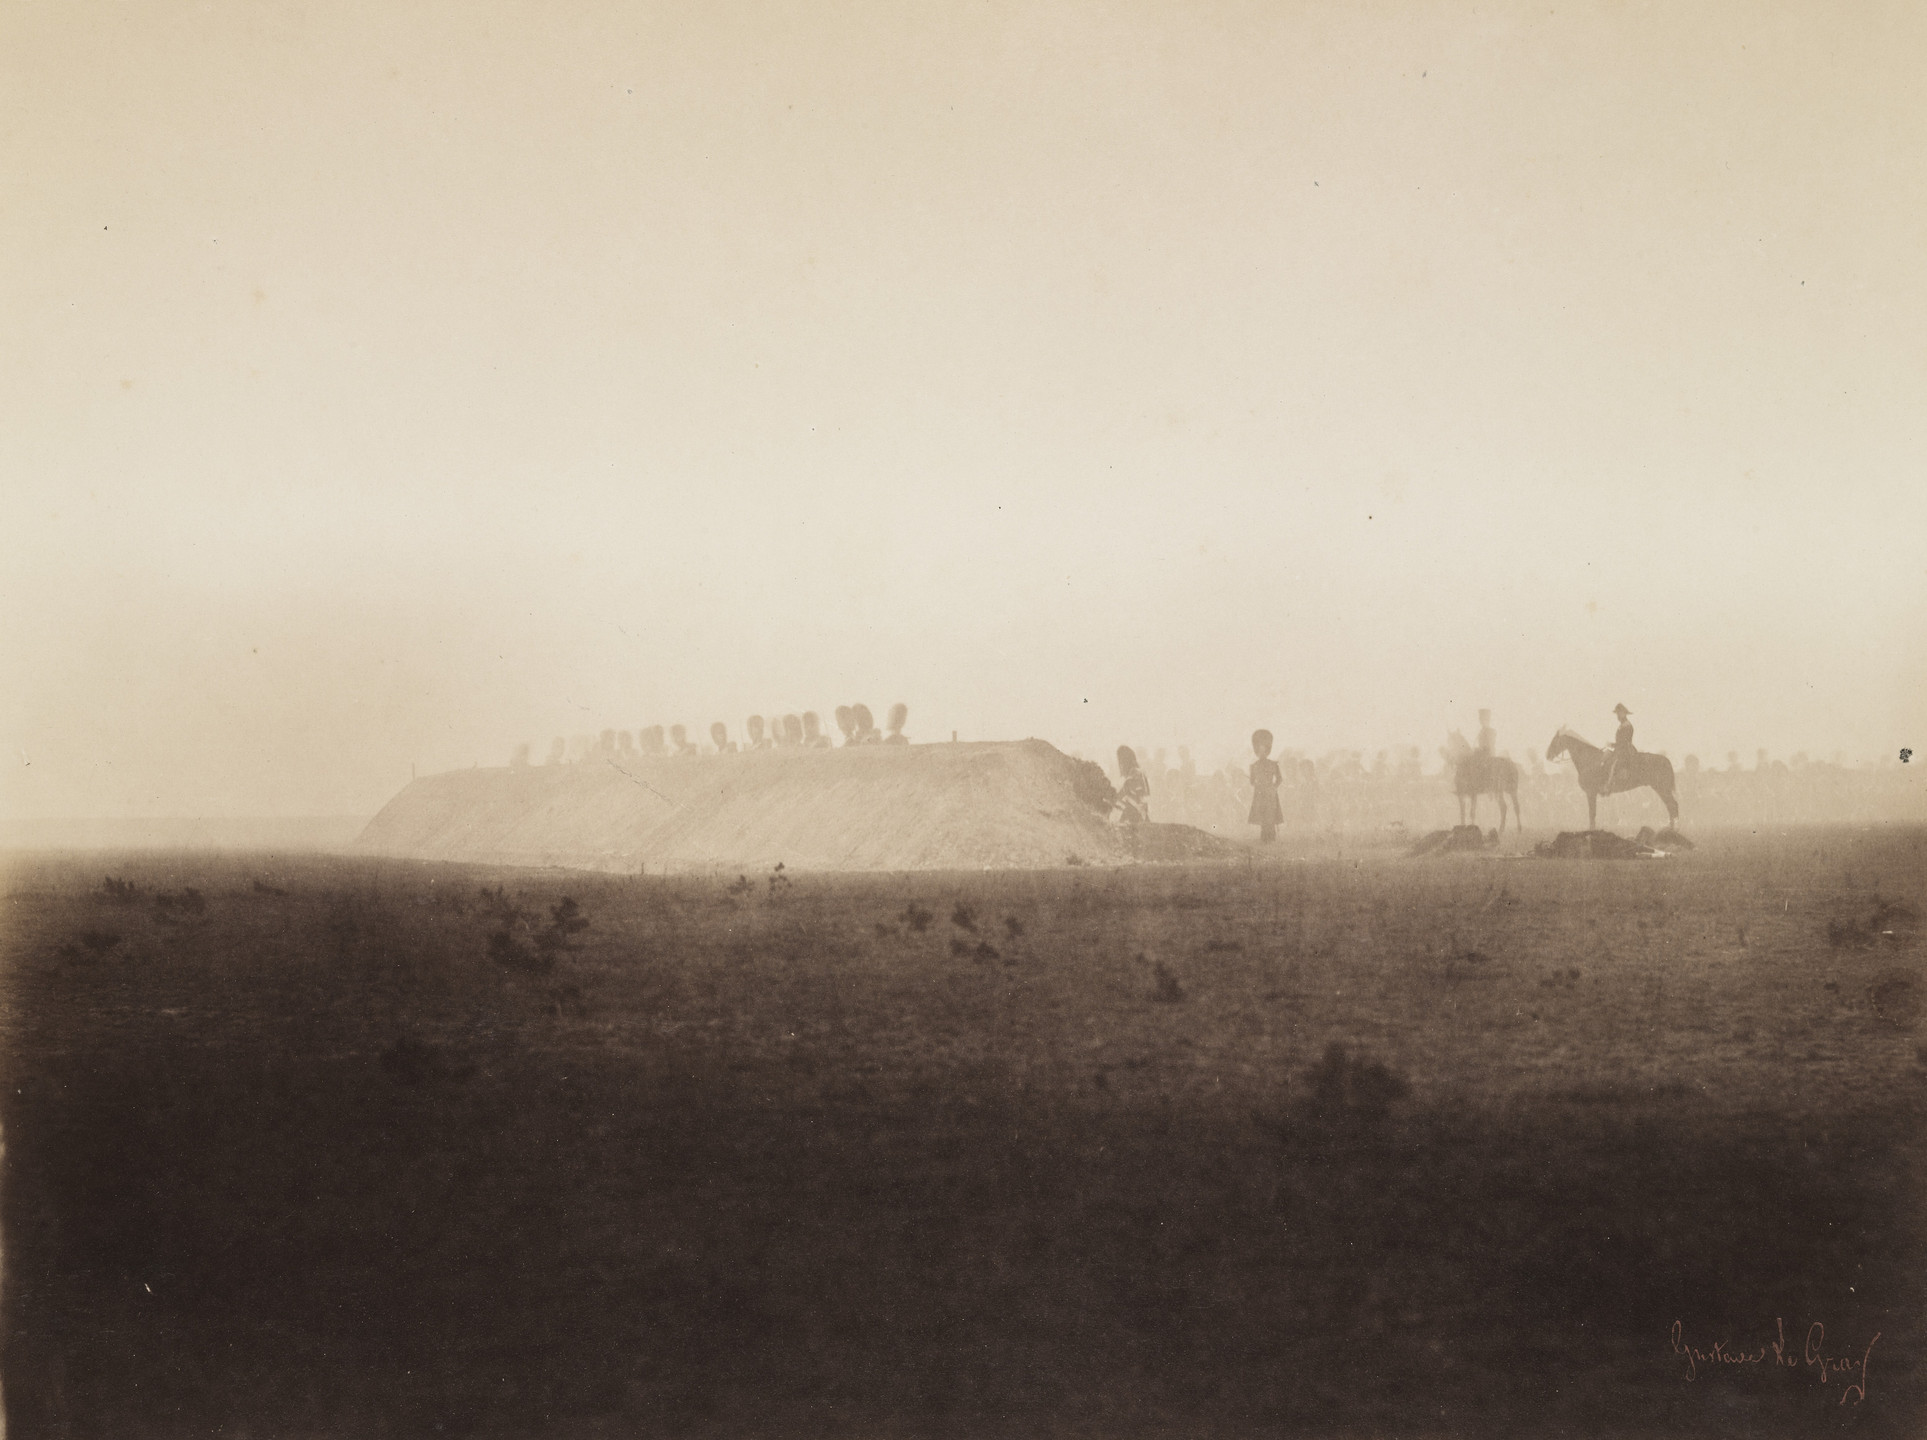 Gustave Le Gray. Cavalry Maneuvers, October 3 from the album Memories of the Camp de Châlons under General Decaën. 1857